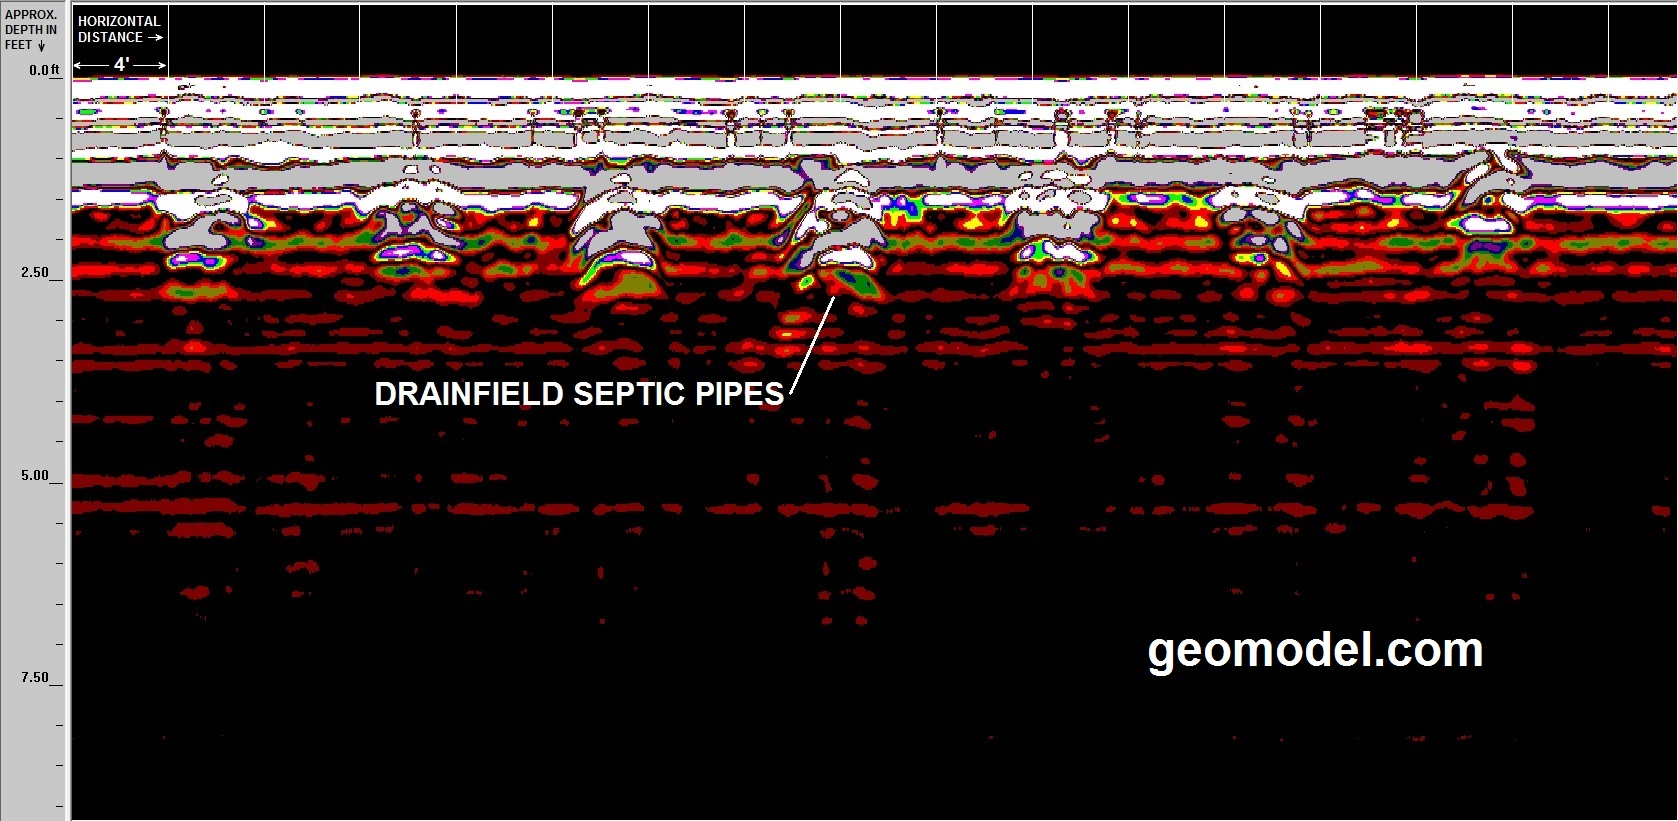 GPR profile showing buried drainfield pipes